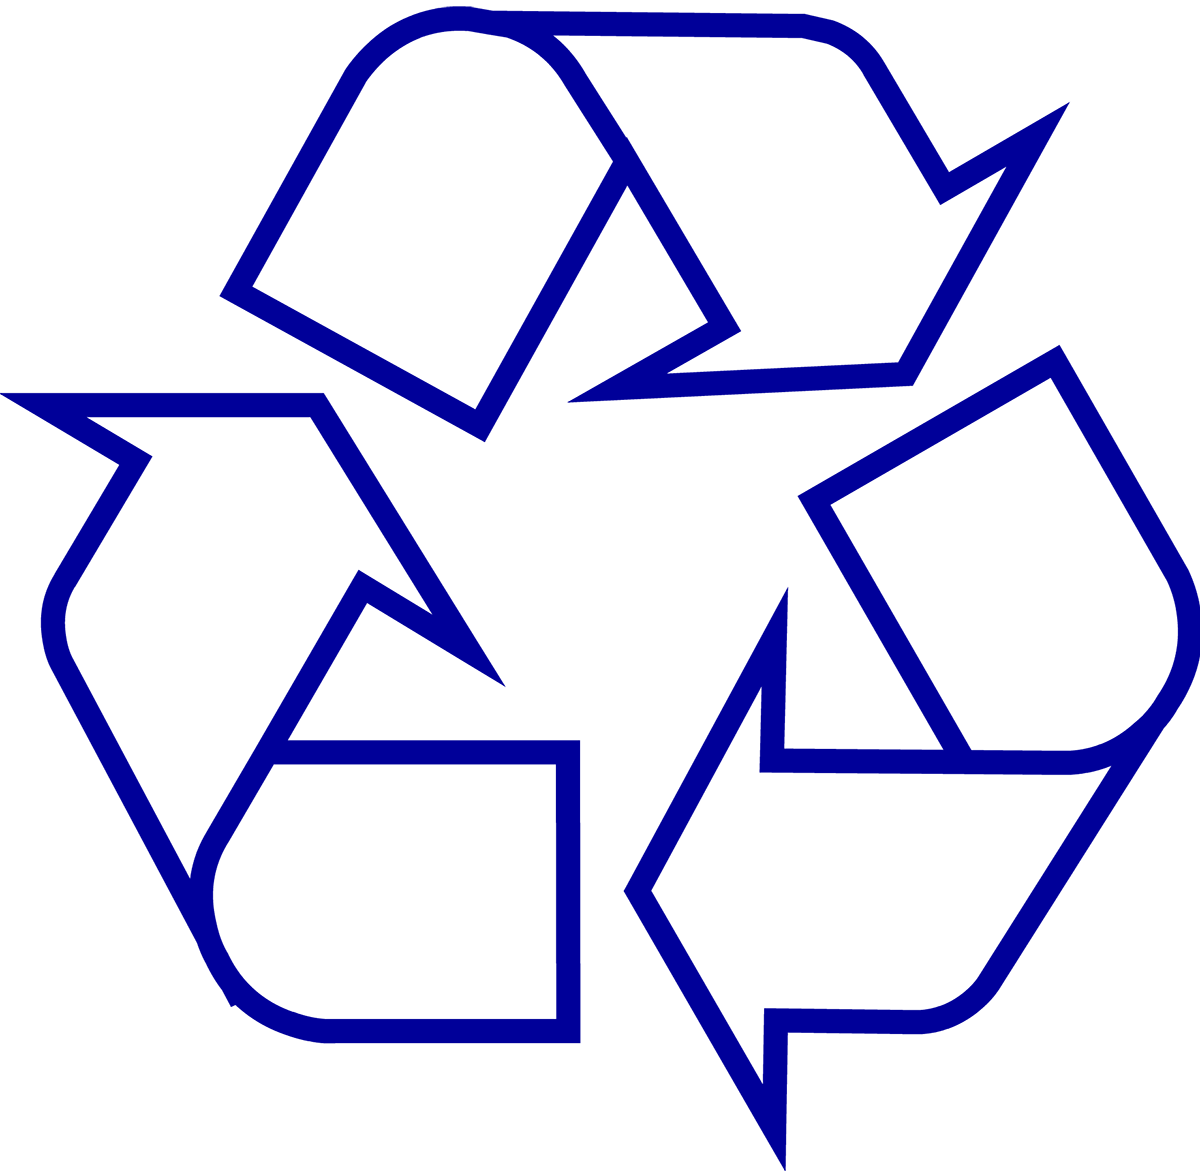 jpg royalty free Download symbol the original. Recycling drawing color